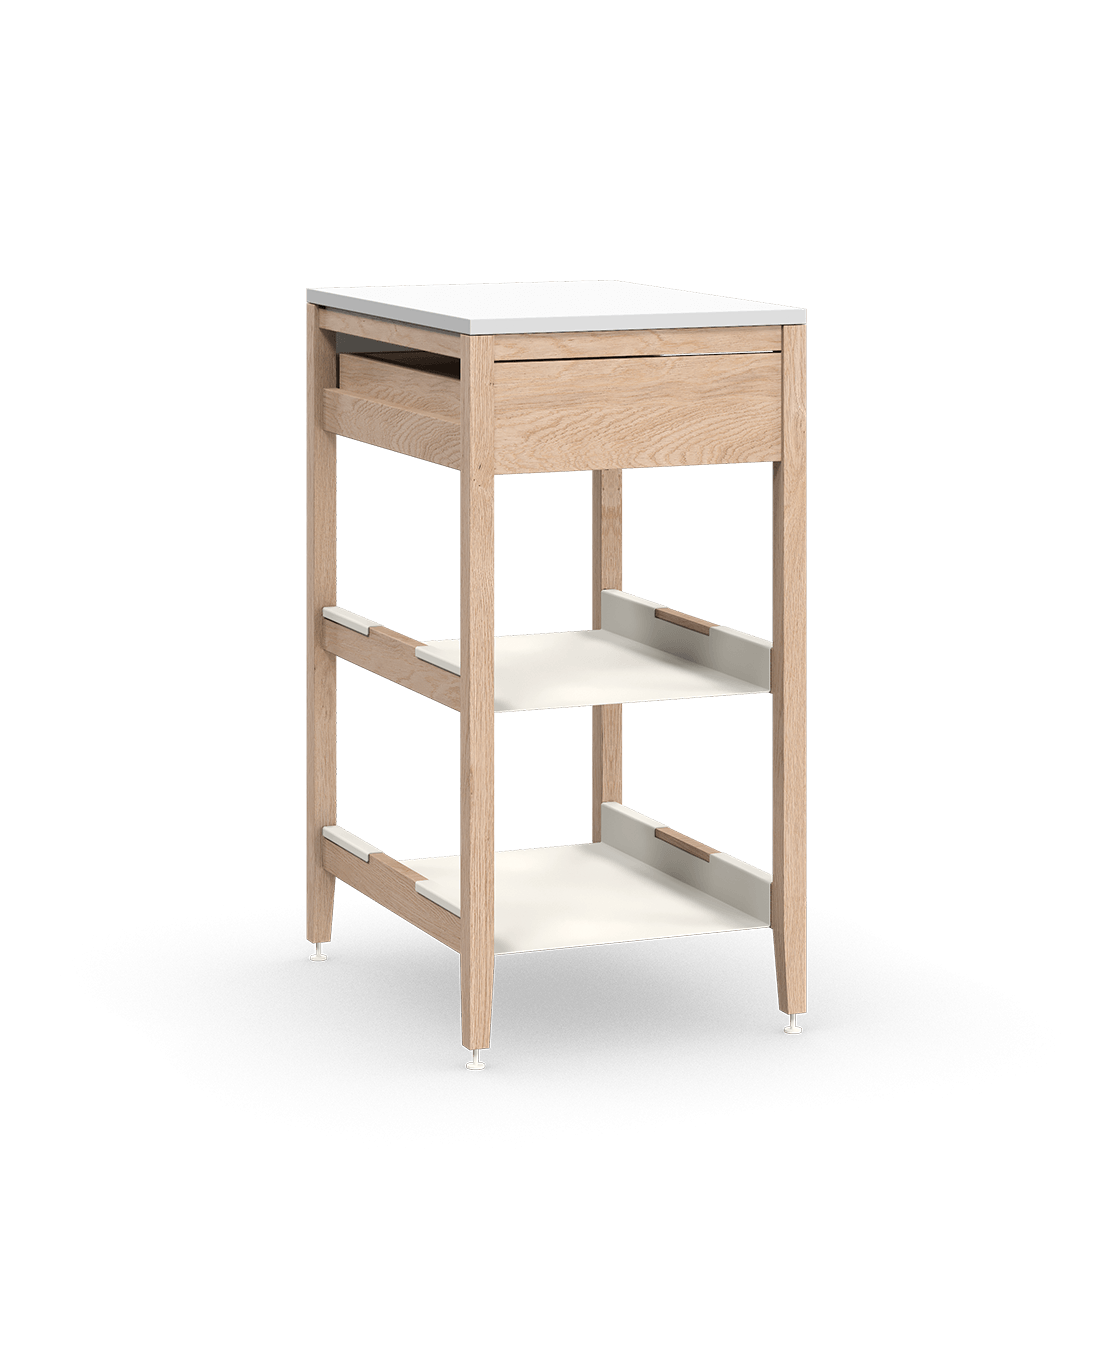 coquo radix white oak solid wood modular 2 shelves 1 drawer base kitchen cabinet 21 inch C1-C-21SB-1023-NA